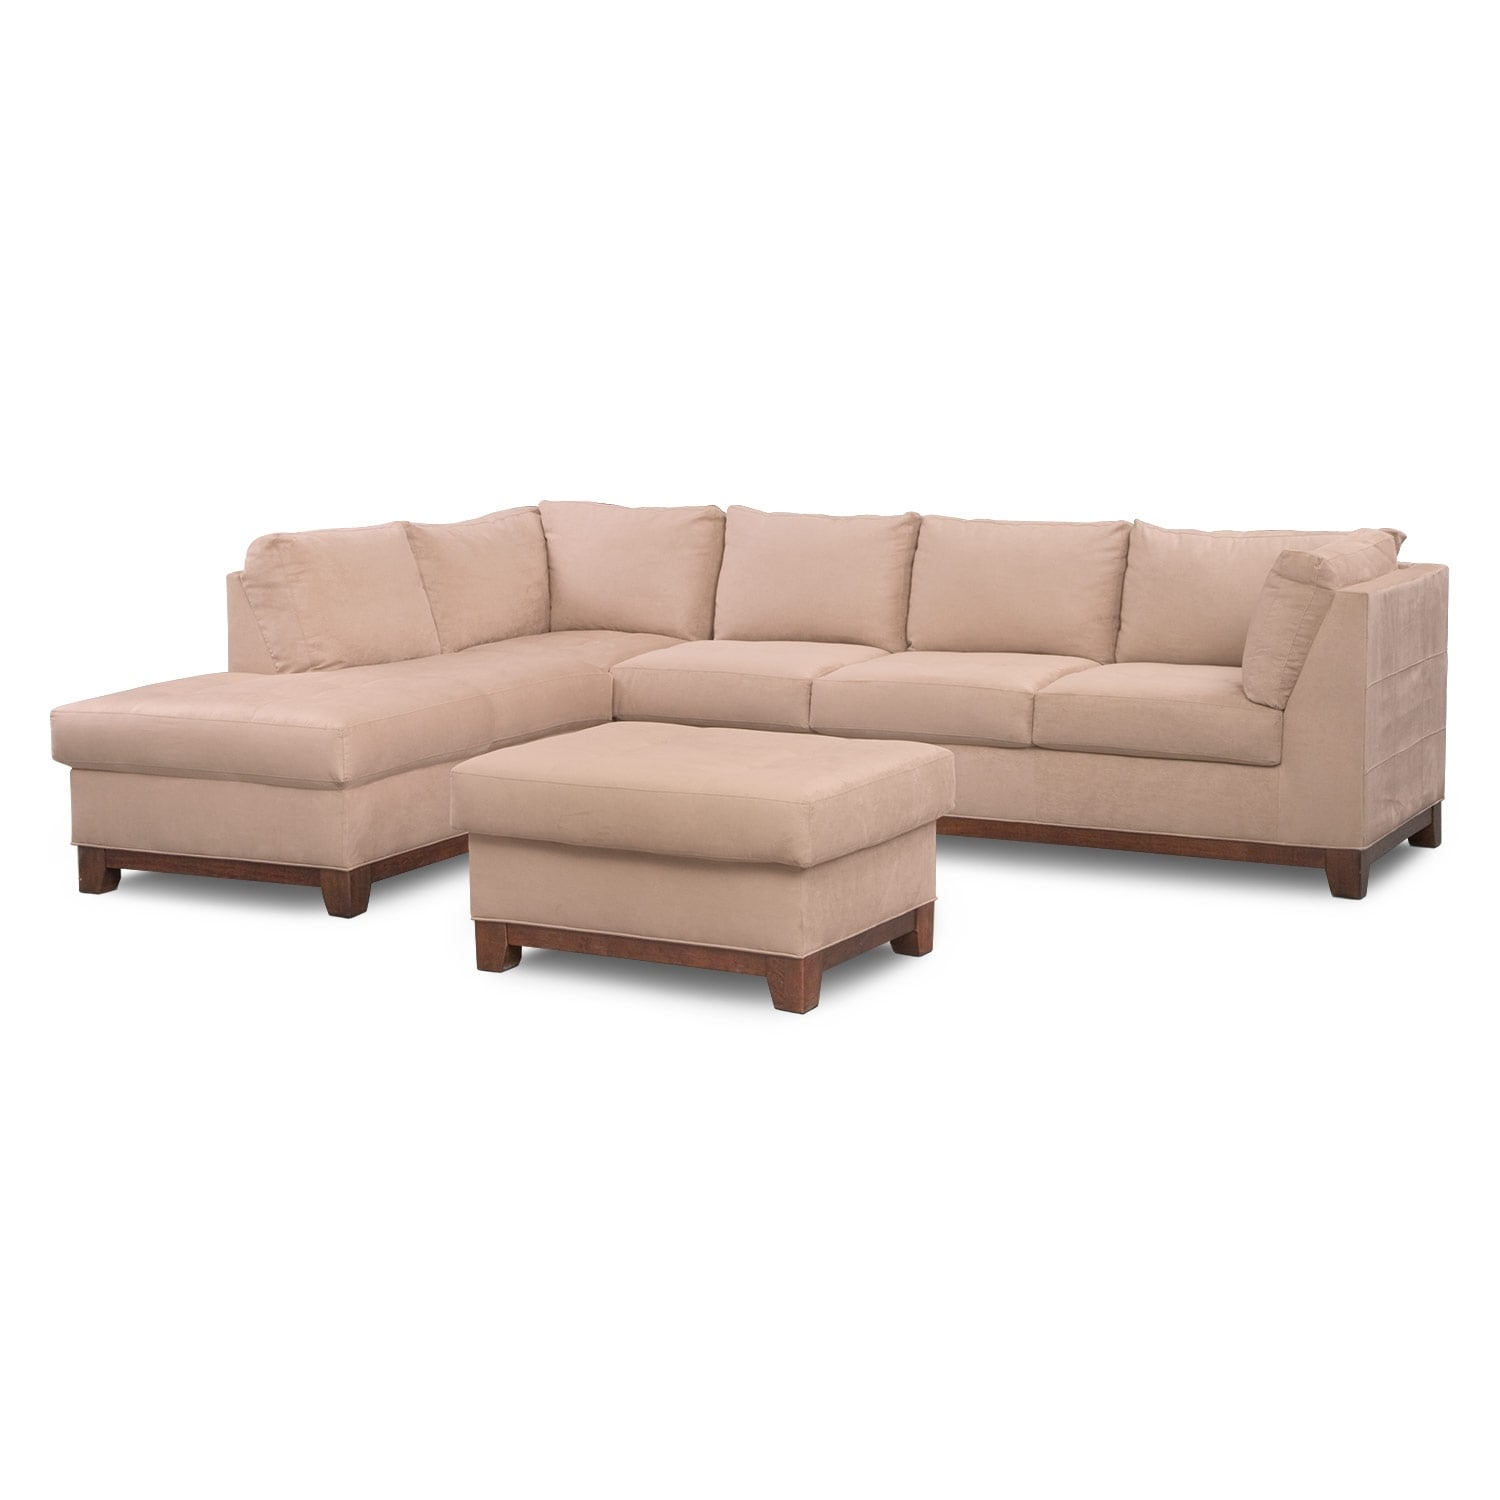 Living Room Furniture - Soho II 2 Pc. Sectional (Reverse) and Ottoman